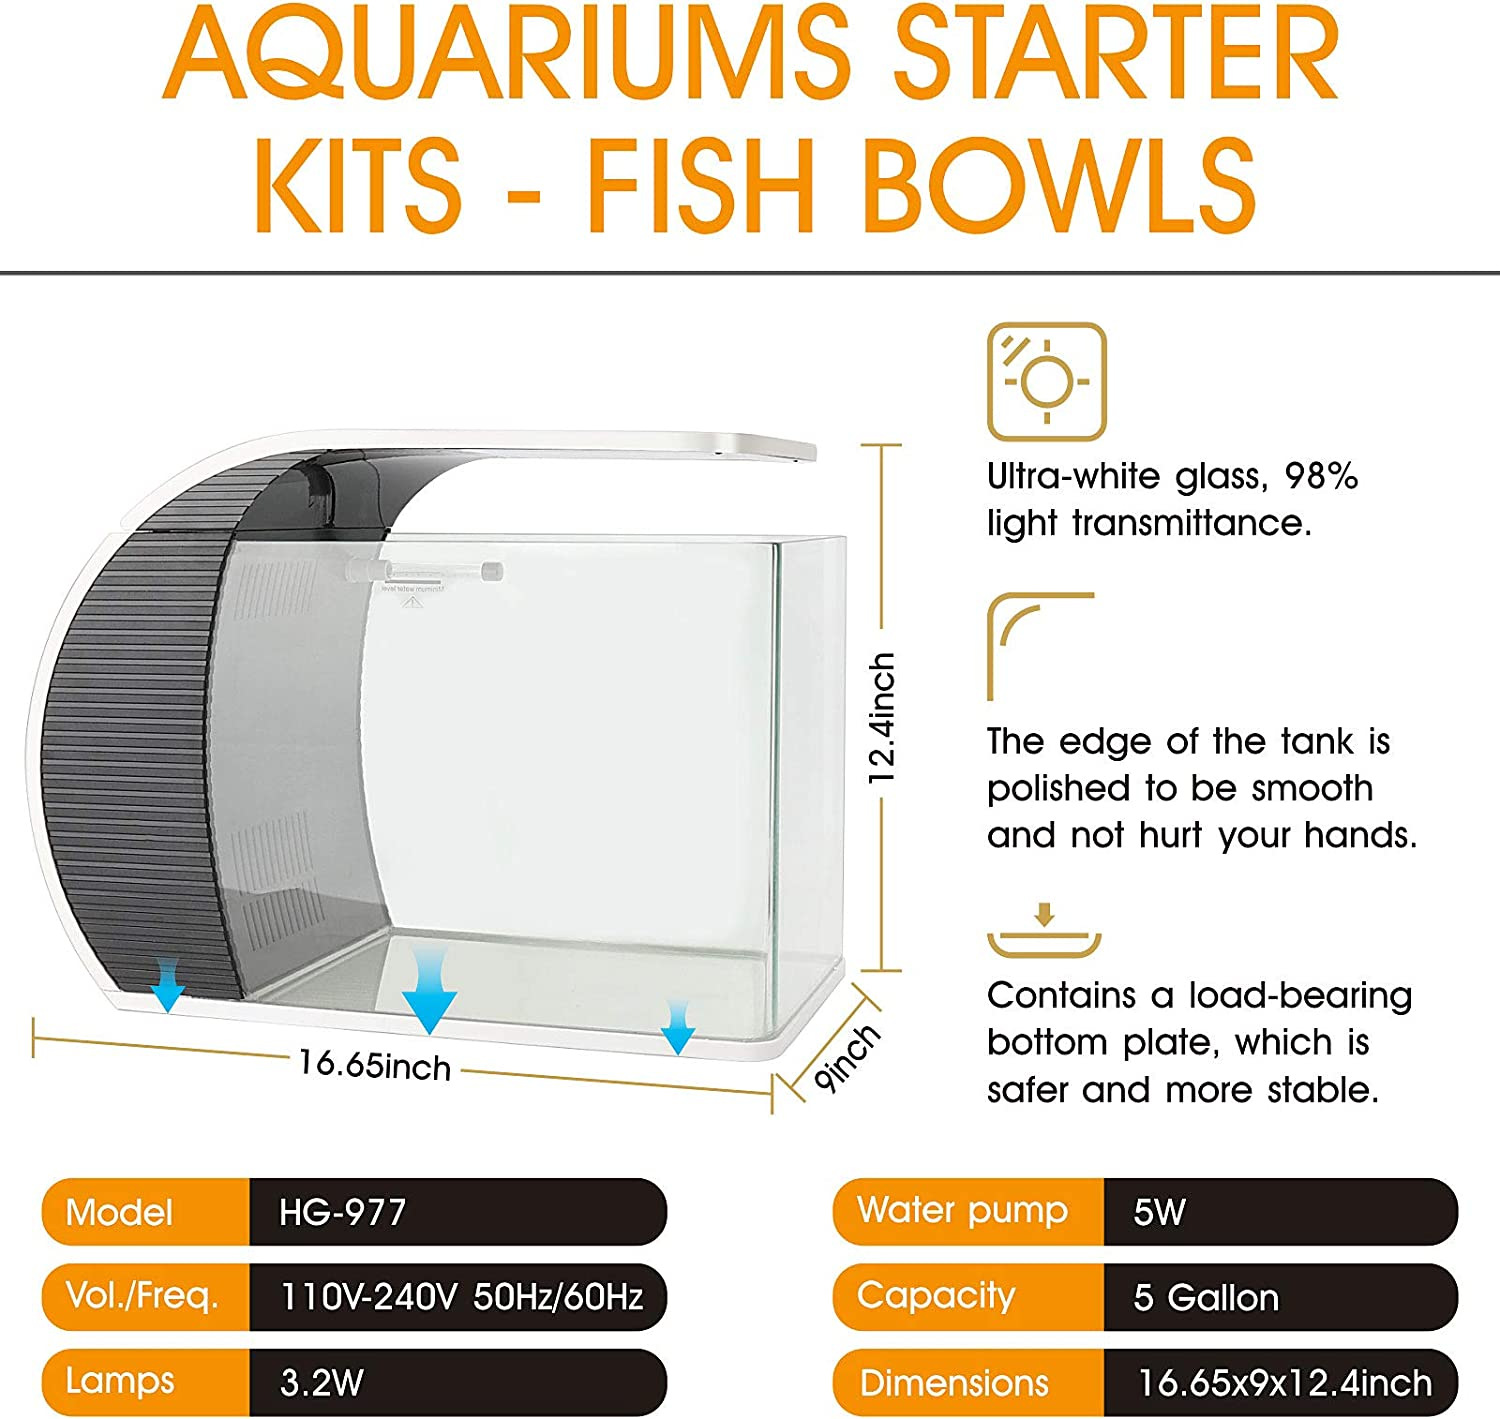 5W Water Pump Rainwater and Ducks Mouth Outlet Hidden Filtration Box and Material Arc-Shaped Aquarium Kit with 3.2W Led Lighting Fish Tank Glass Cover hygger 5 Gallon Fish Aquarium Starter Kits